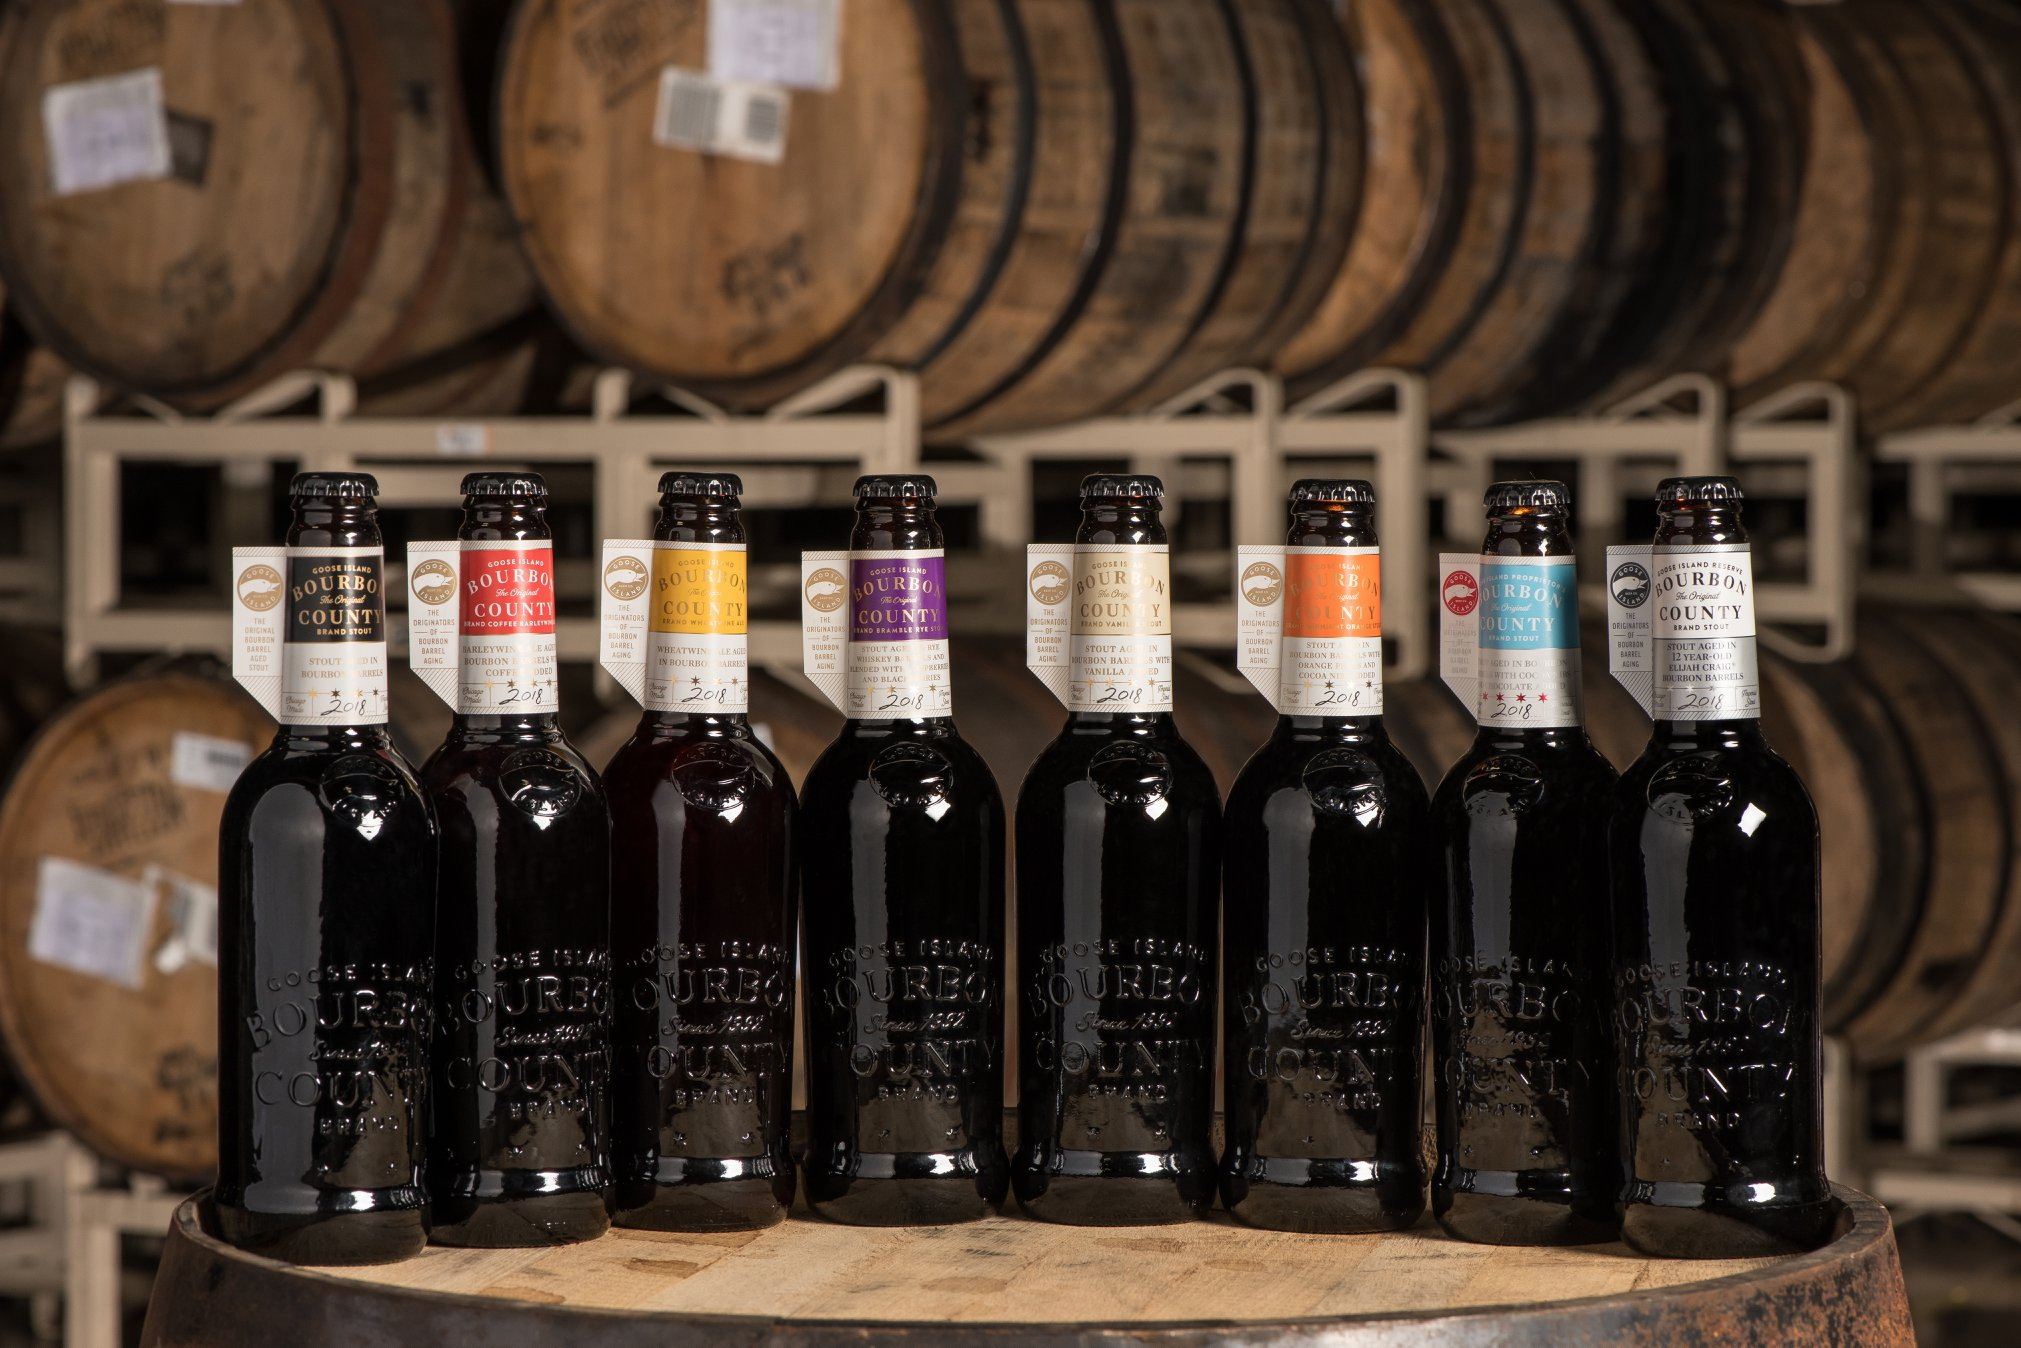 The-Goose-Island-2018-Bourbon-County-Brand-Stout-Lineup-of-barrel-aged-beers-courtesy-of-Goose-Island-Beer-Co..jpg